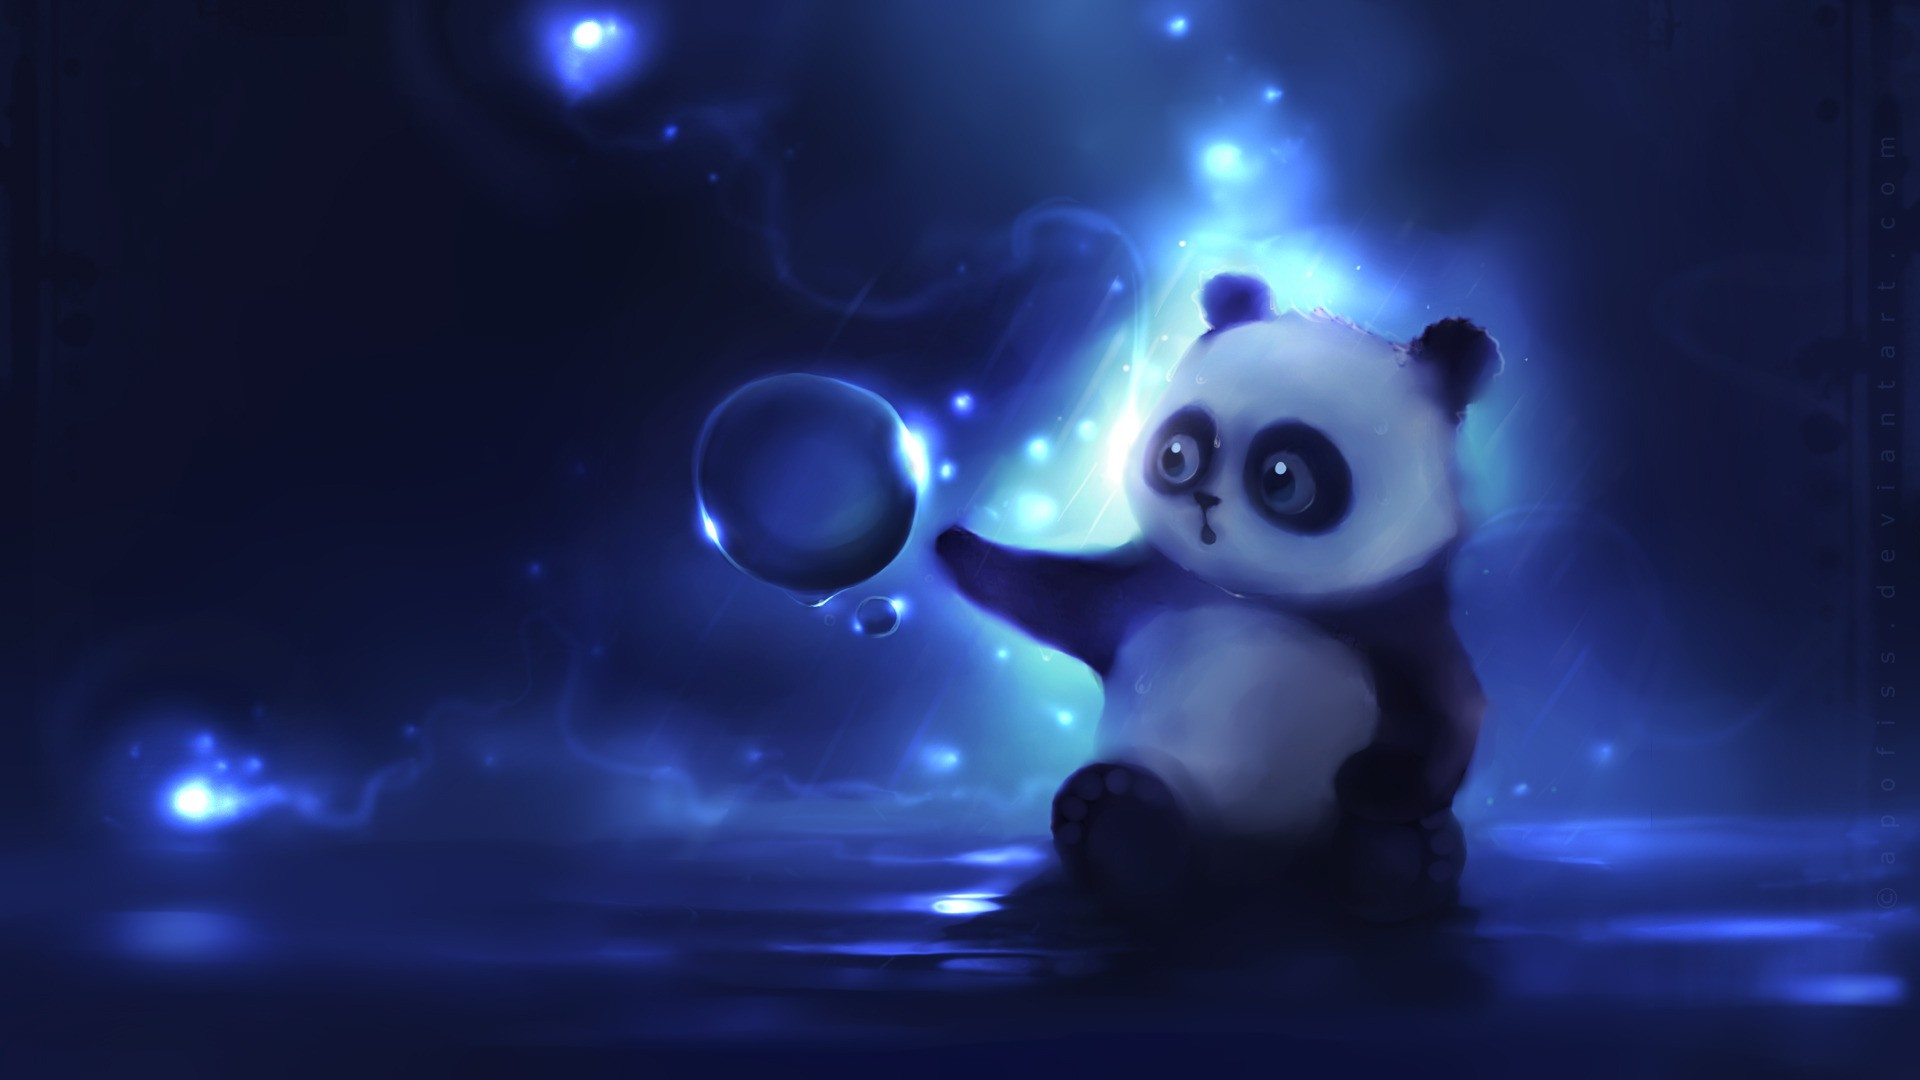 1920x1080 cute panda animal hd desktop wallpaper hd desktop wallpaper